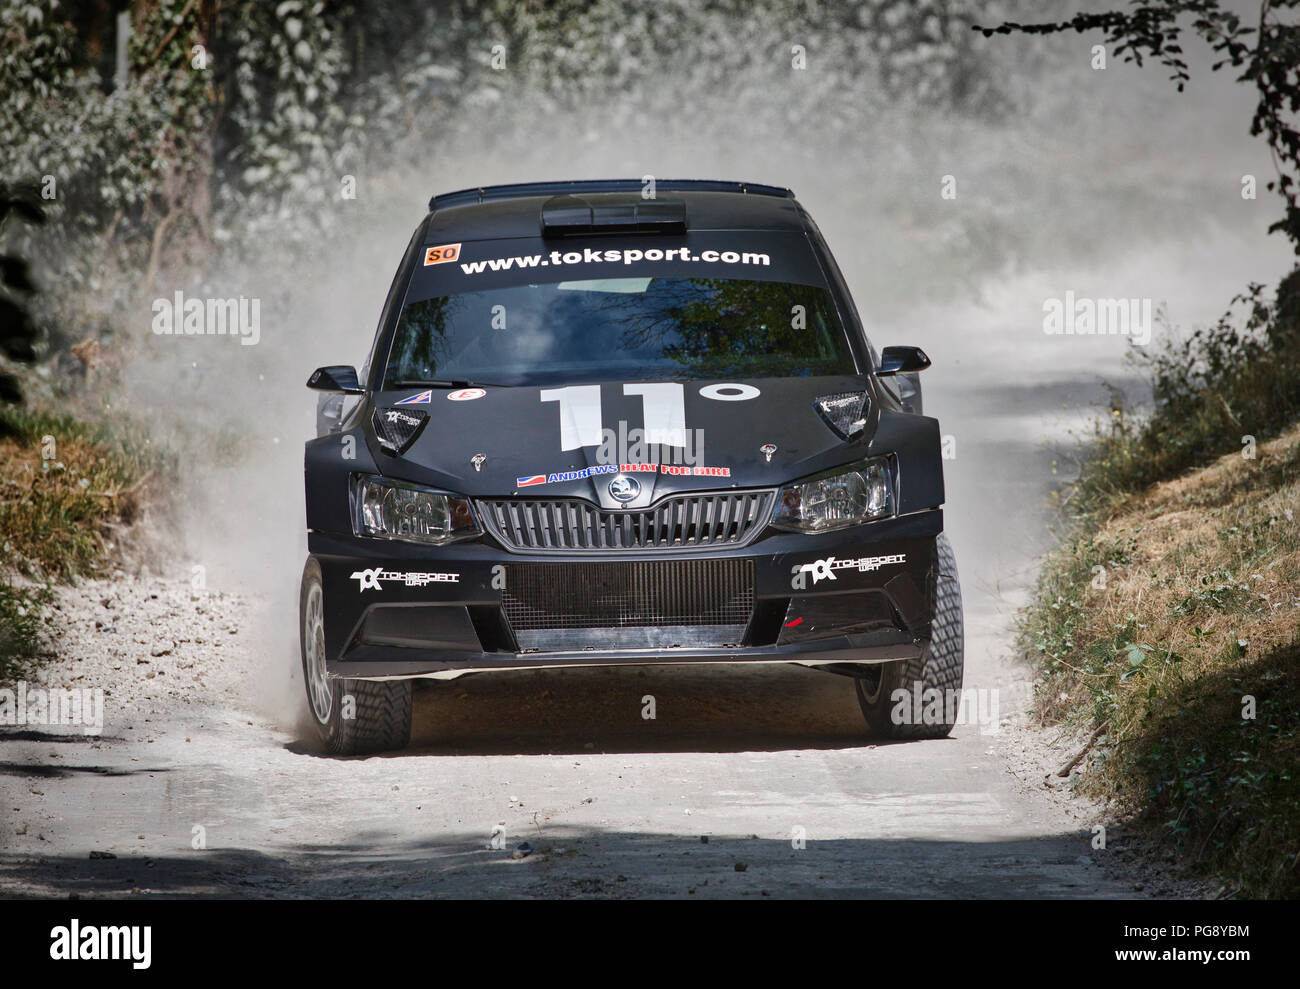 Skoda Fabia R5 High Resolution Stock Photography And Images Alamy